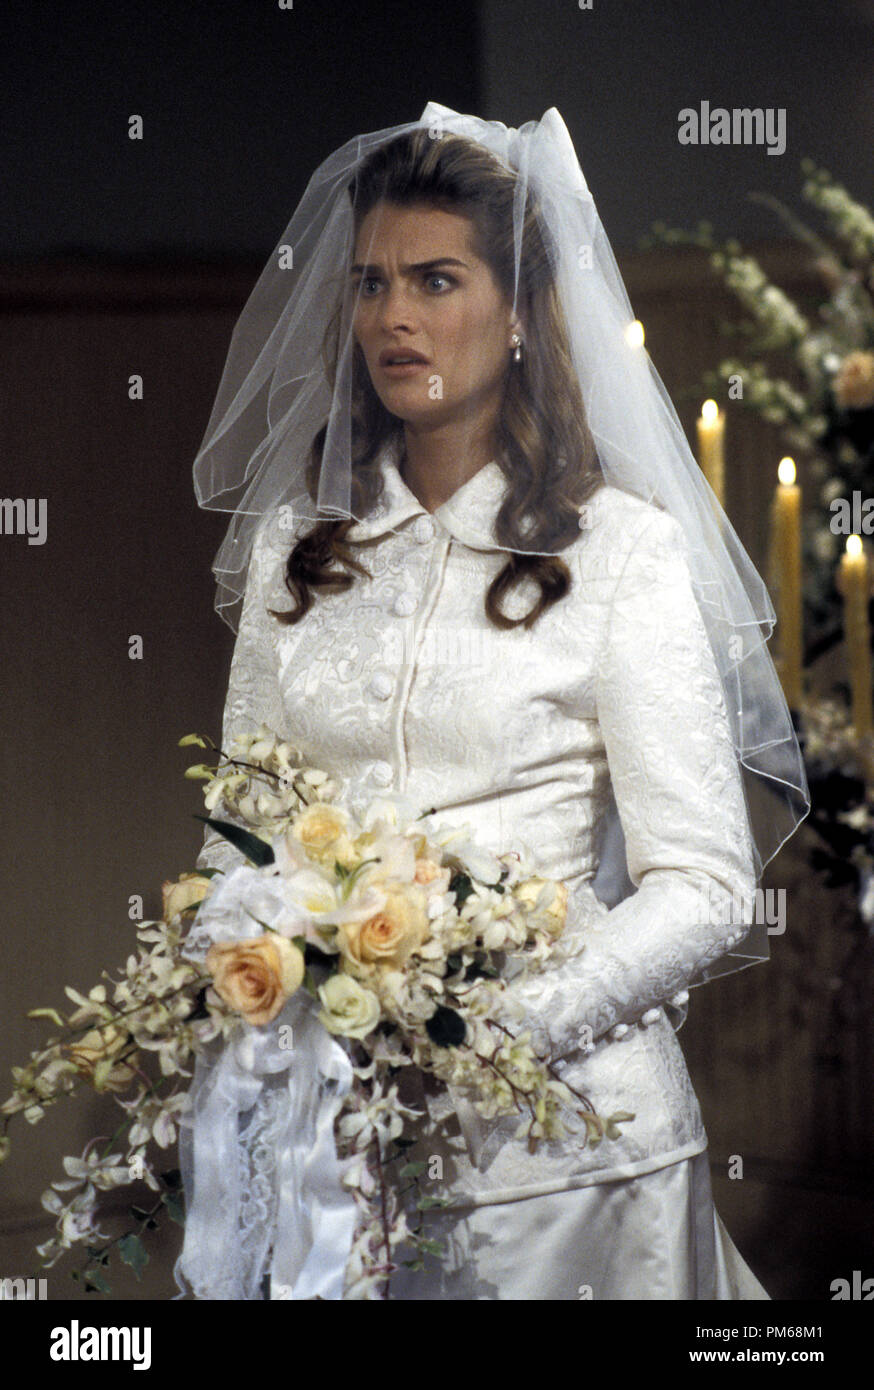 Film Still from 'Suddenly Susan' Brooke Shields 1996 Photo Credit: Alice S. Hall   File Reference # 31042220THA  For Editorial Use Only - All Rights Reserved - Stock Image